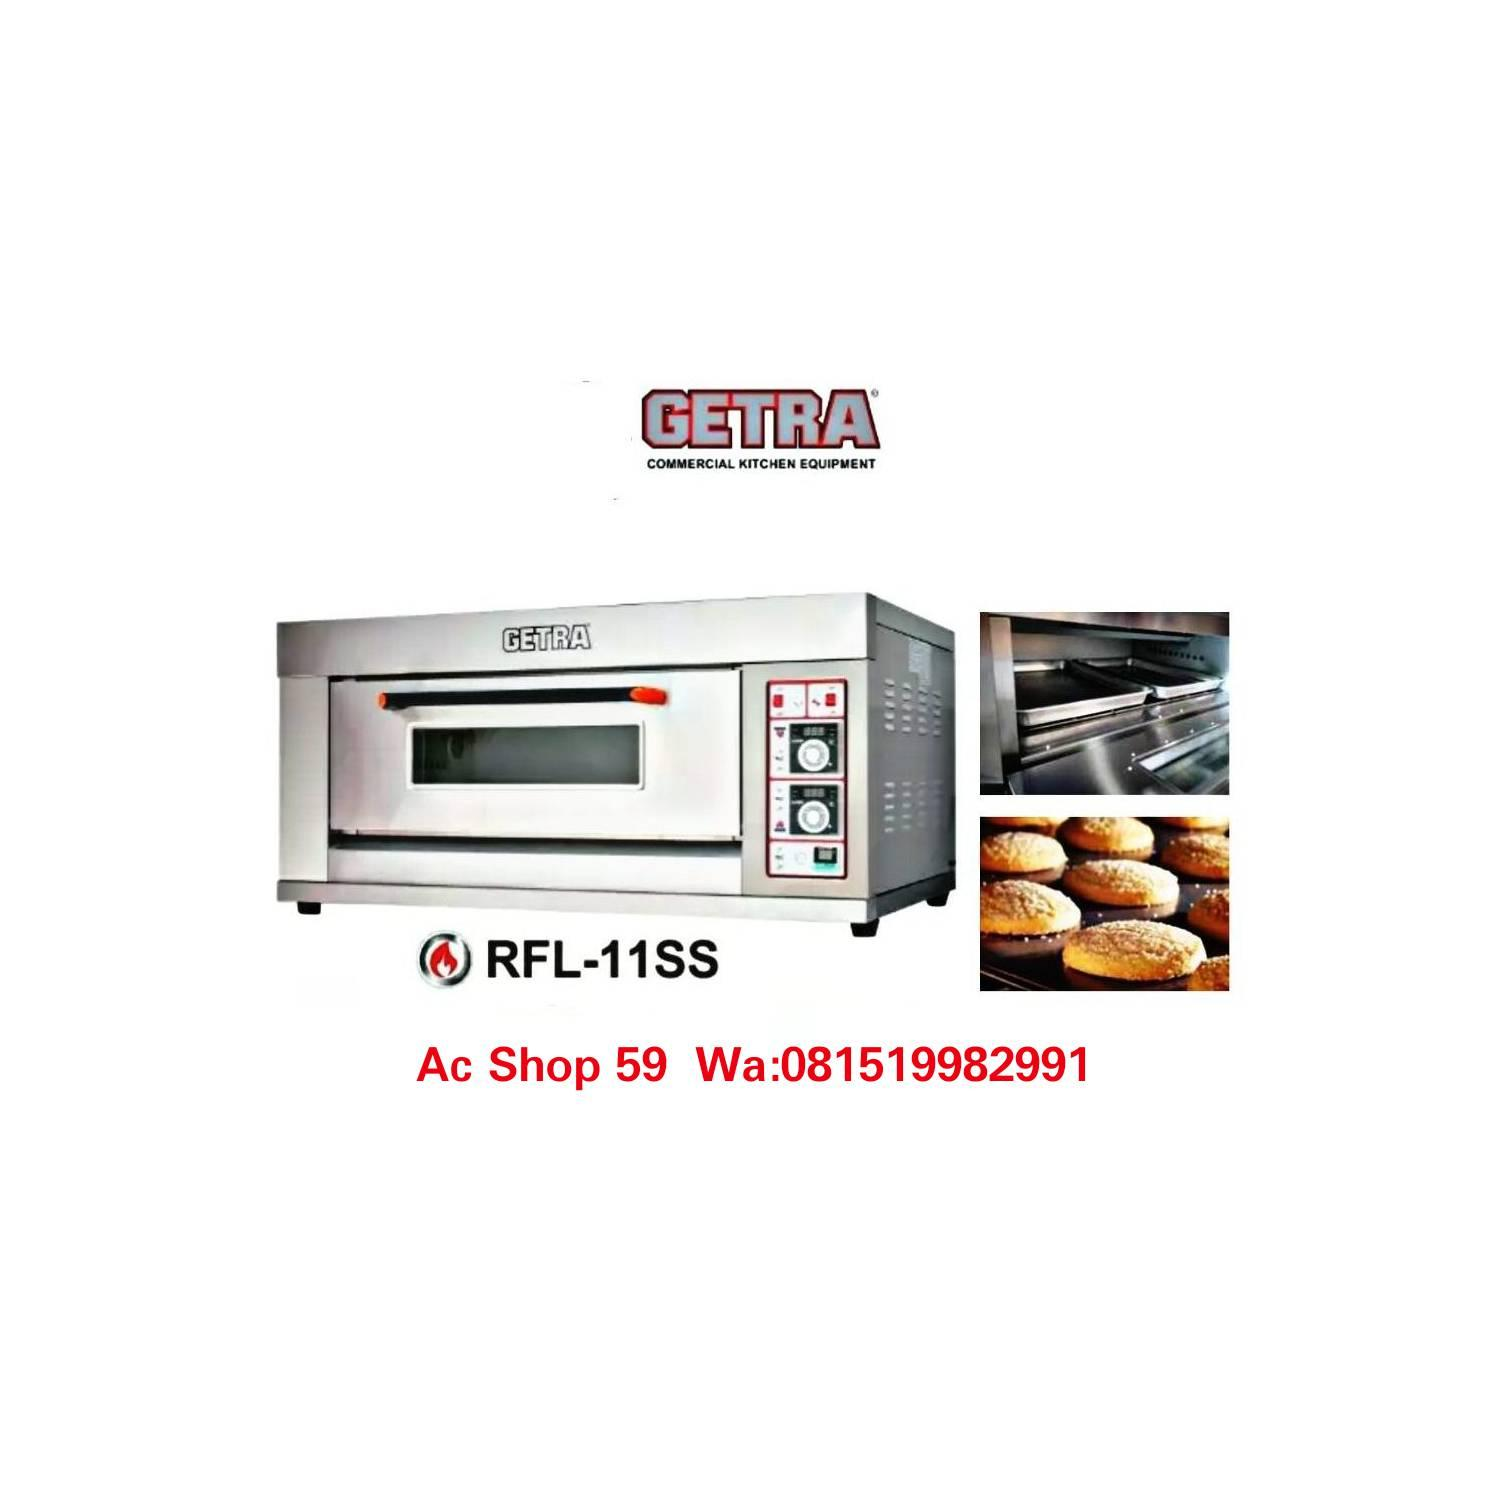 OVEN BAKERY GAS GETRA RFL11SS 1 DECK 1 LOYANG DIGITAL TEMPERATUR NEW